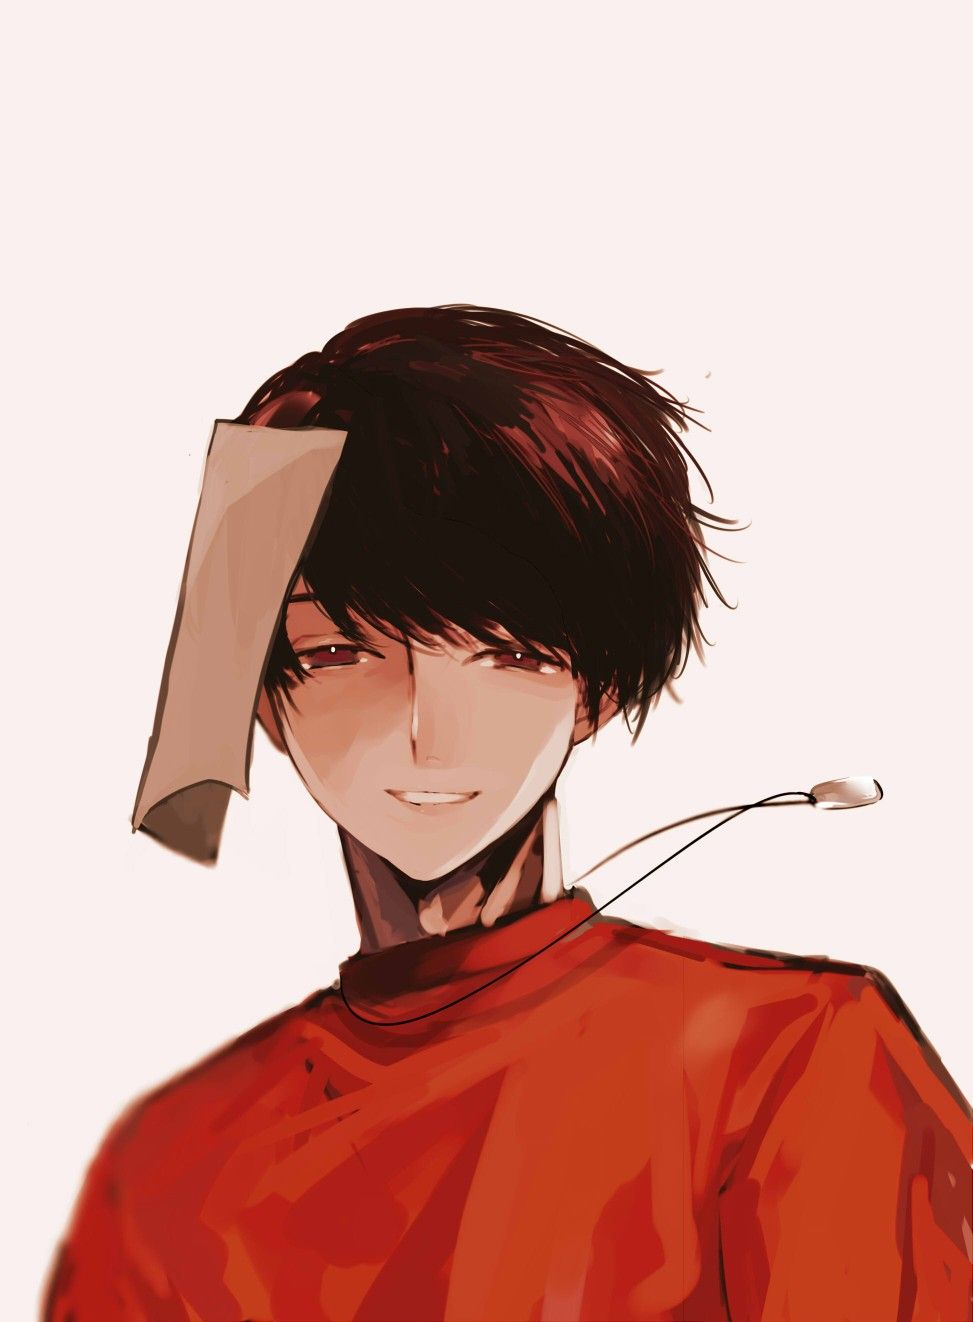 Pin By Sunny On Yandere Males Handsome Anime Aesthetic Anime Anime Guys